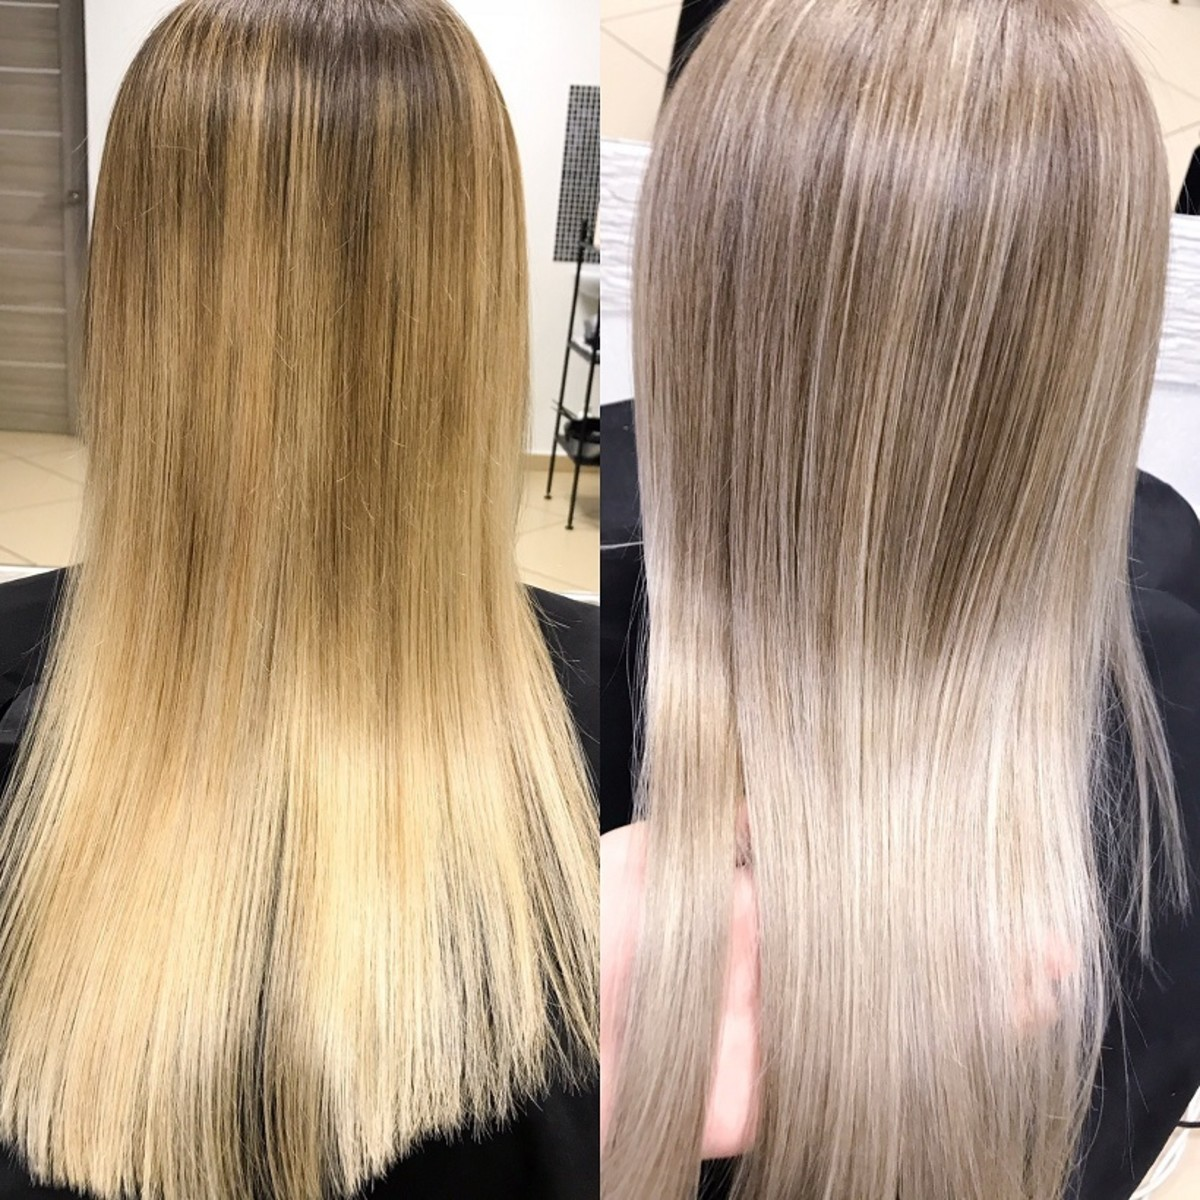 Toning transforms bleached blonde hair into a beautiful result